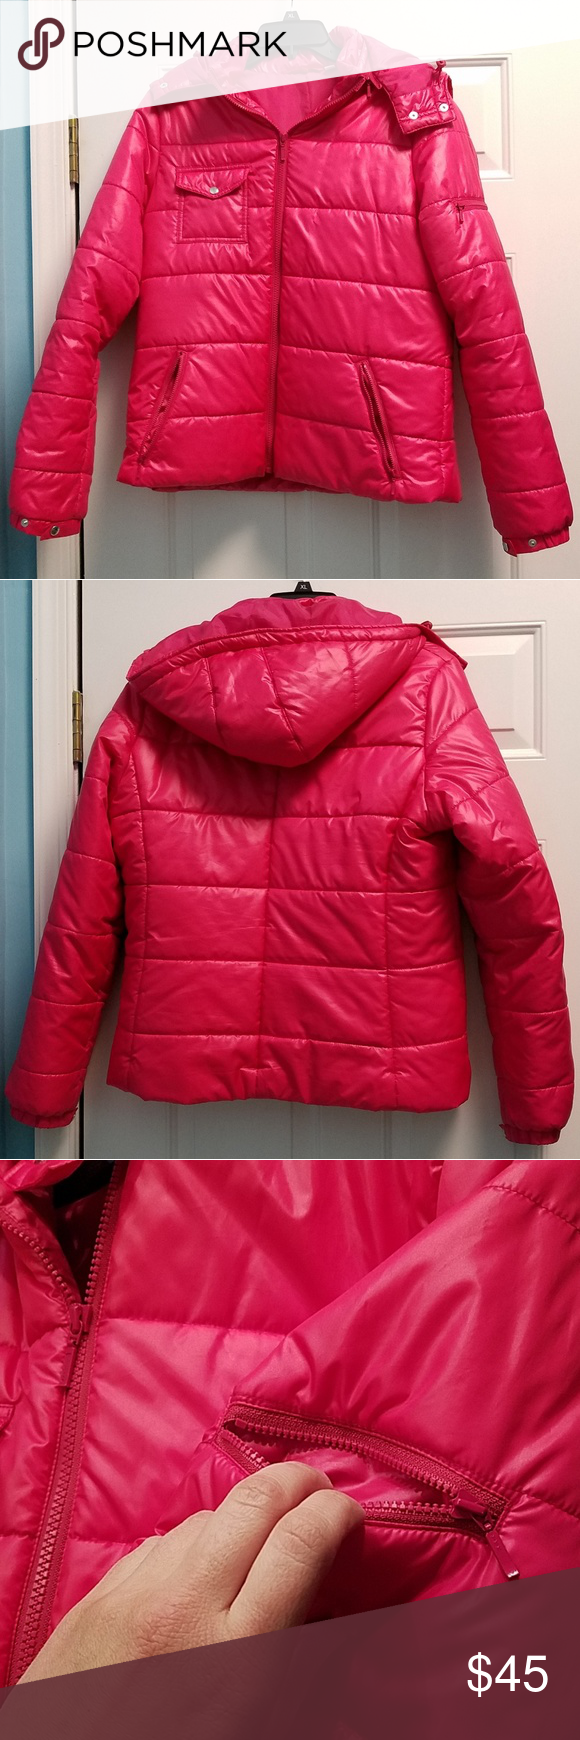 size L Uniqlo hot pink puffer jacket Clothes design